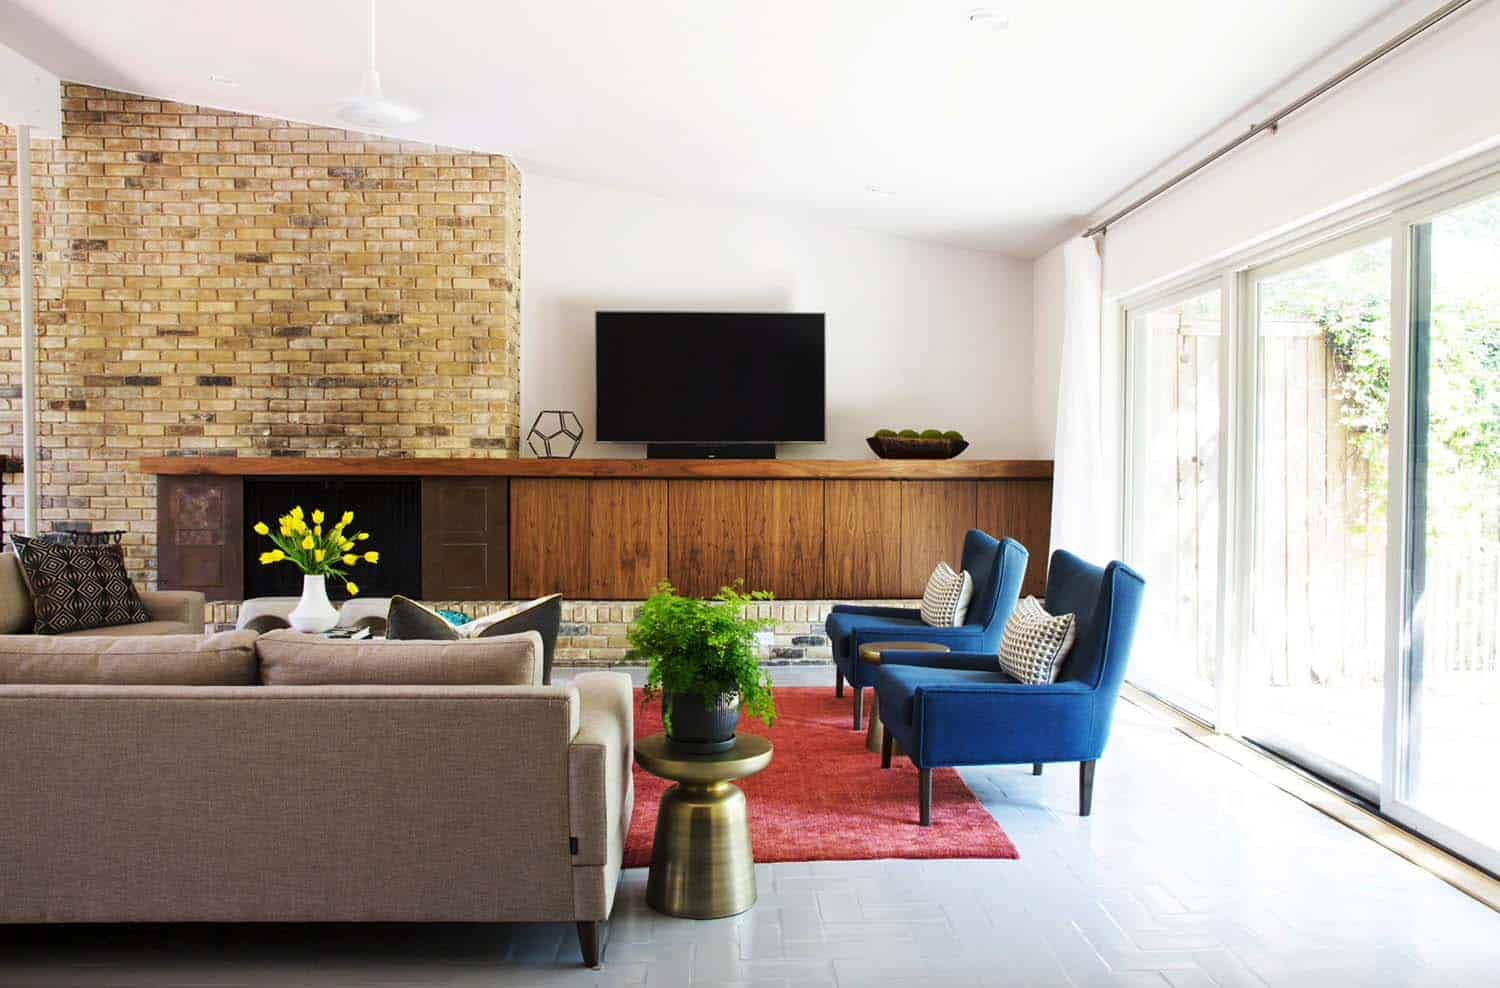 Mid century modern living room ideas Attractive This Midcentury Living Room In Texas Features Stylish Furnishings Set Around An Exposed Brick Fireplace The Fireplace Mantle Extends To Become Cabinet One Kindesign 38 Absolutely Gorgeous Midcentury Modern Living Room Ideas